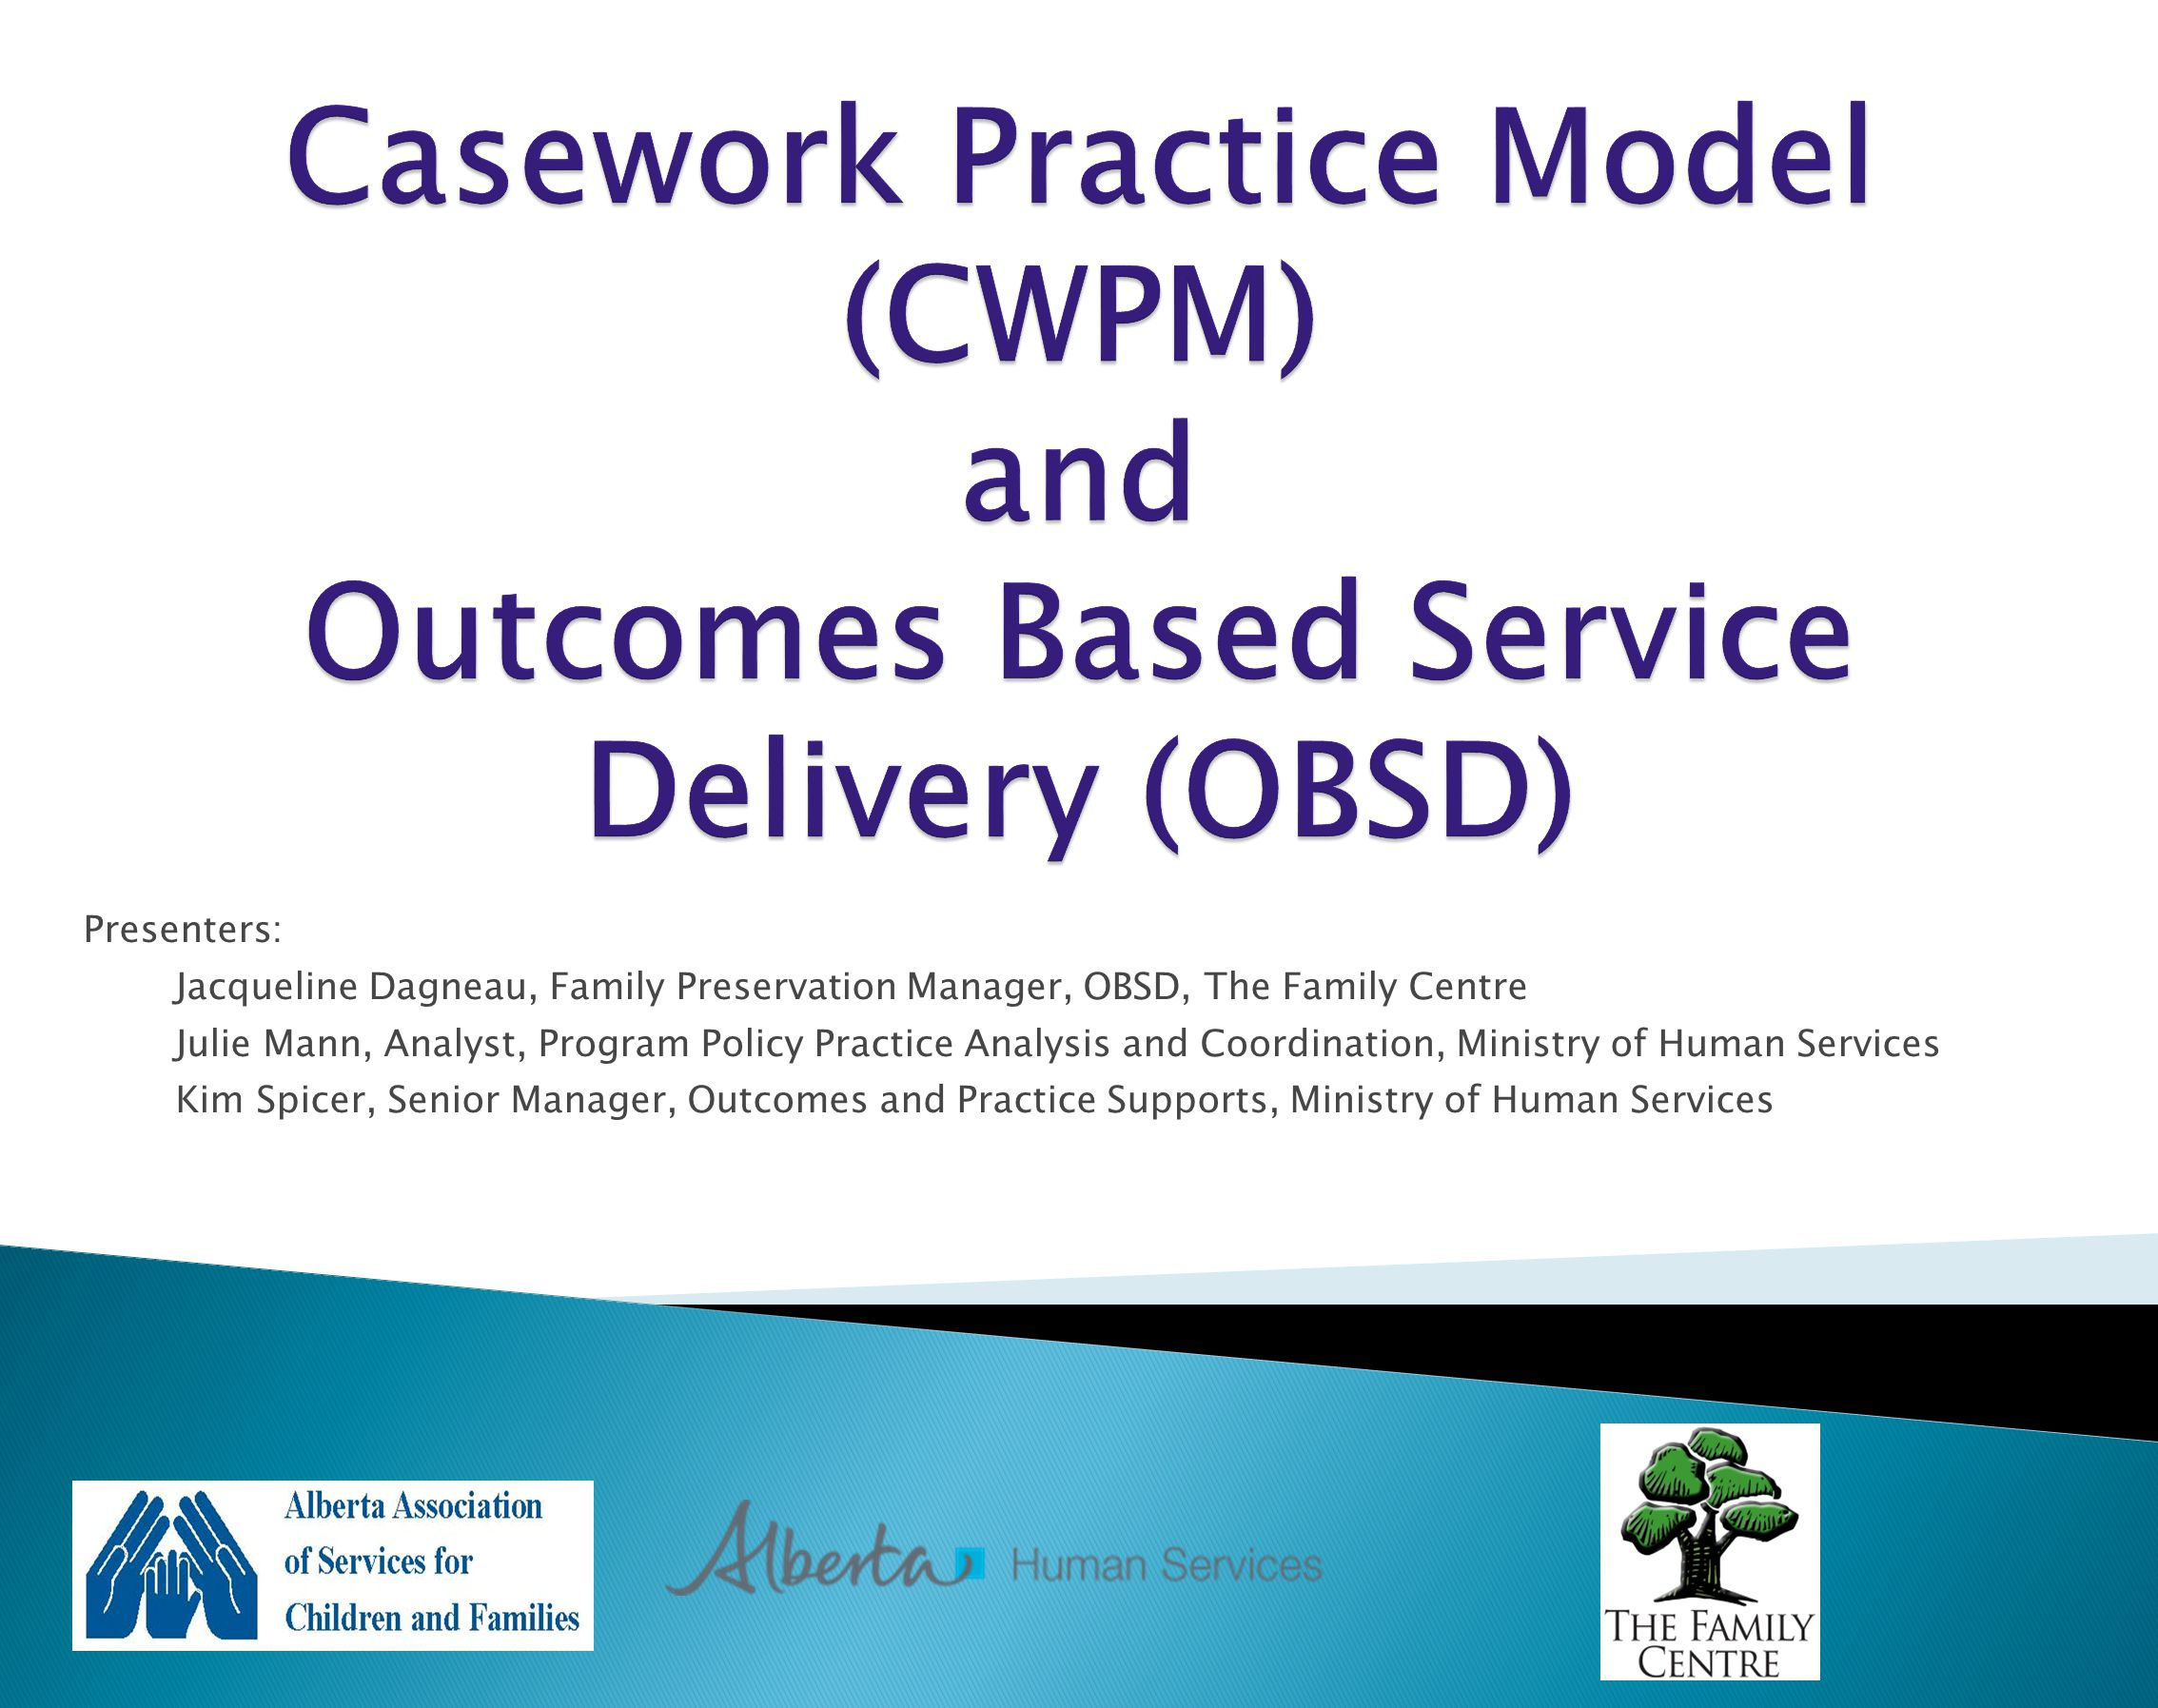 Presenters: Jacqueline Dagneau, Family Preservation Manager, OBSD, The Family Centre Julie Mann, Analyst, Program Policy Practice Analysis and Coordination, Ministry of Human Services Kim Spicer, Senior Manager, Outcomes and Practice Supports, Ministry of Human Services